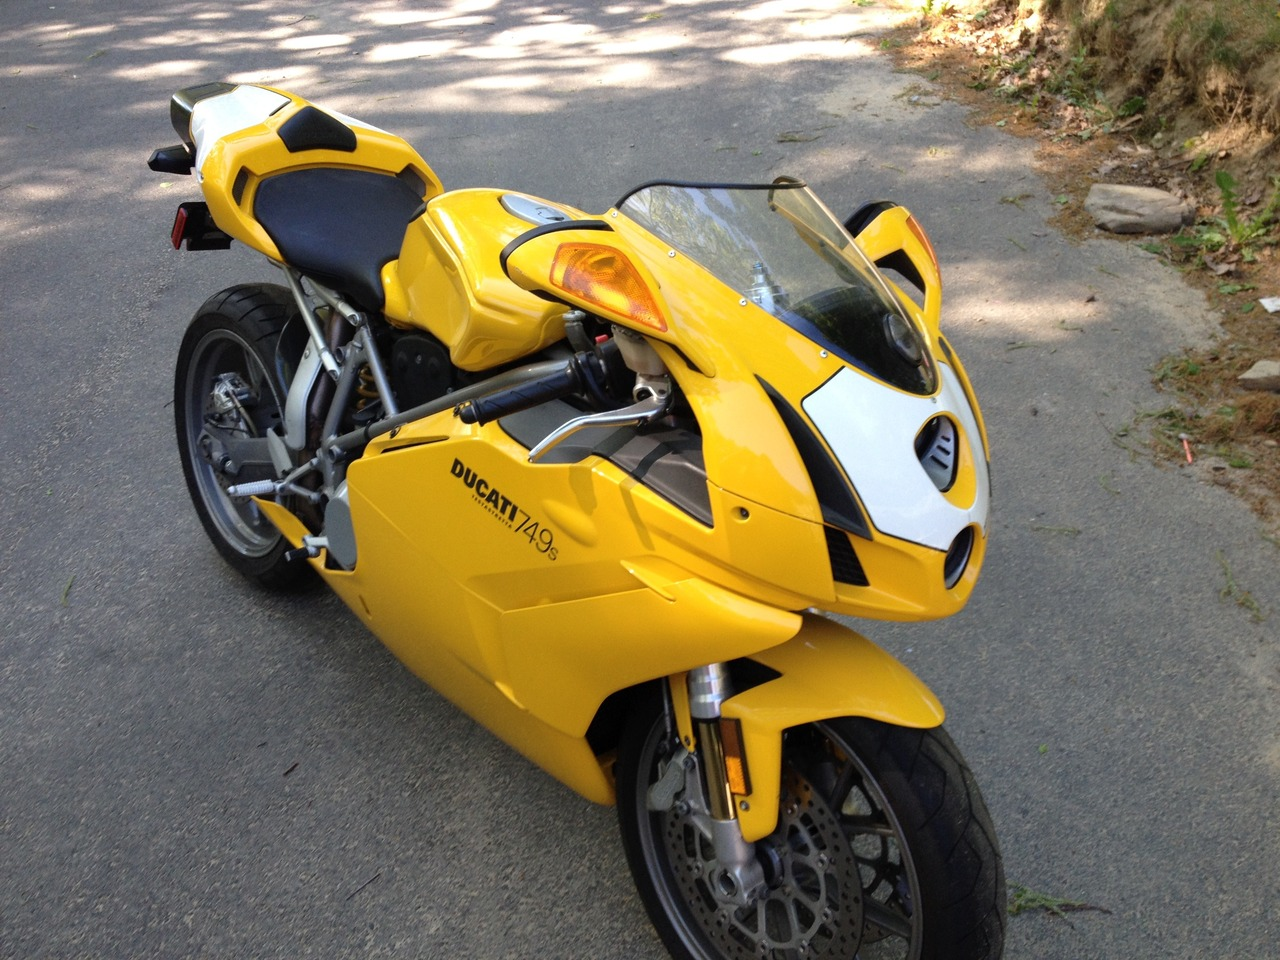 2004 Ducati Superbike 749 S, motorcycle listing